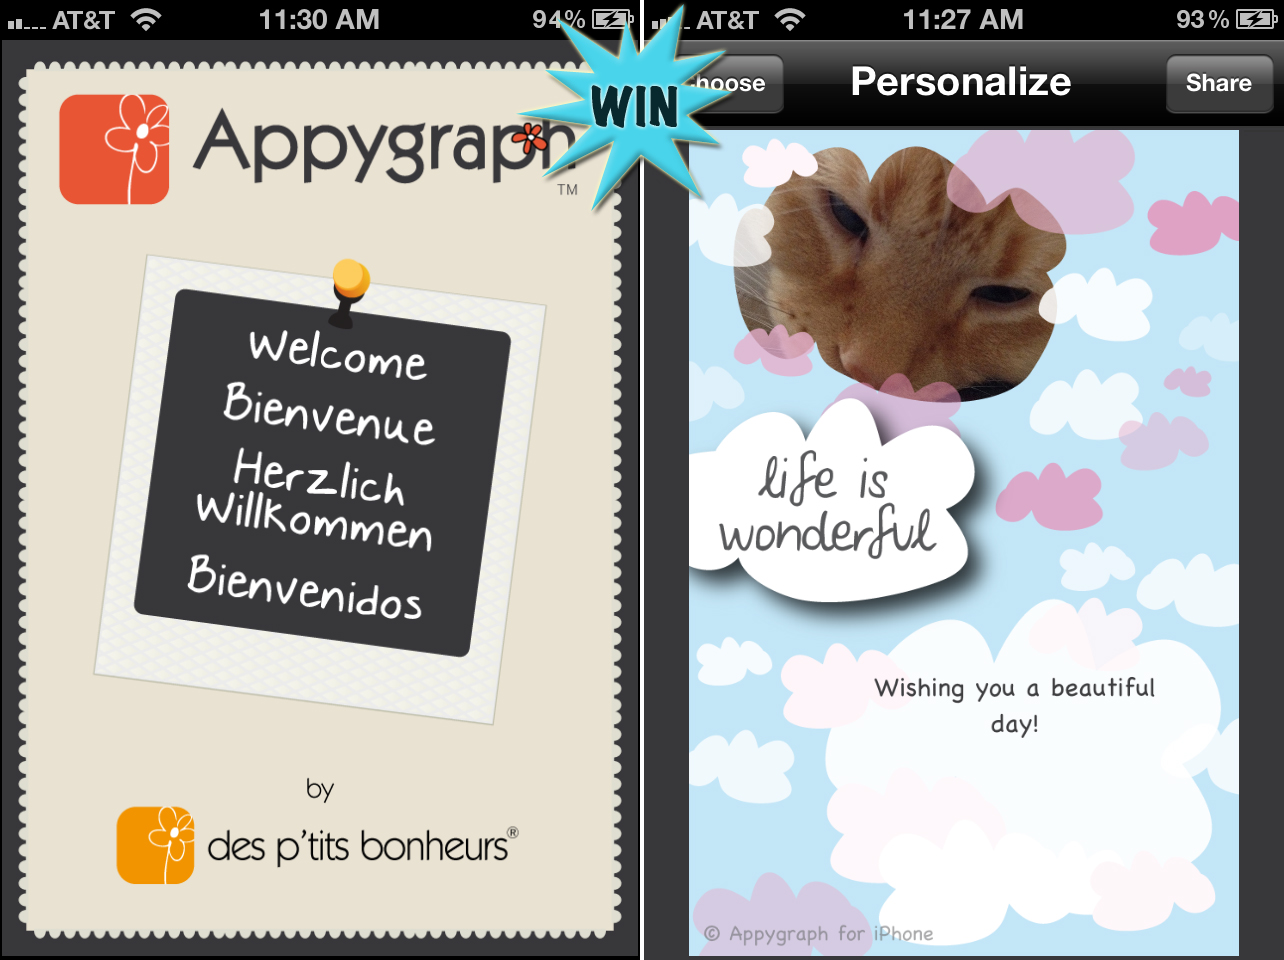 A Chance To Win A 10 Itunes Gift Card To Be Used Towards Appygraph